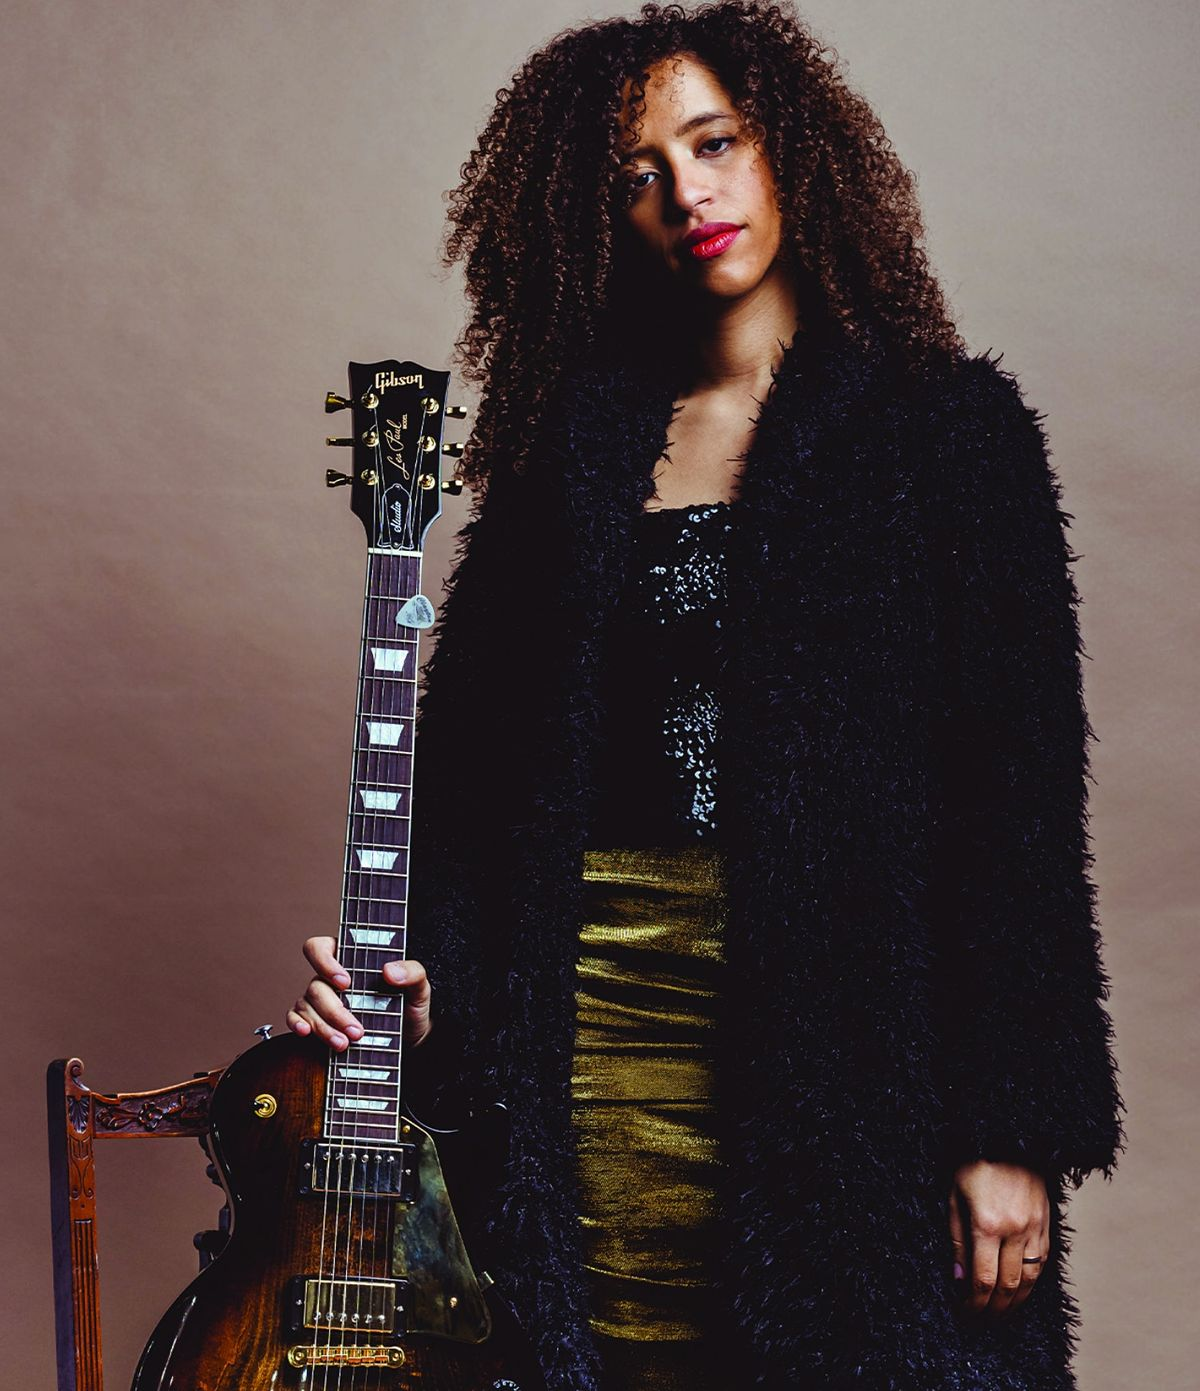 Jackie Venson LIVE at The Brightside, 2 November | Event in Dayton | AllEvents.in